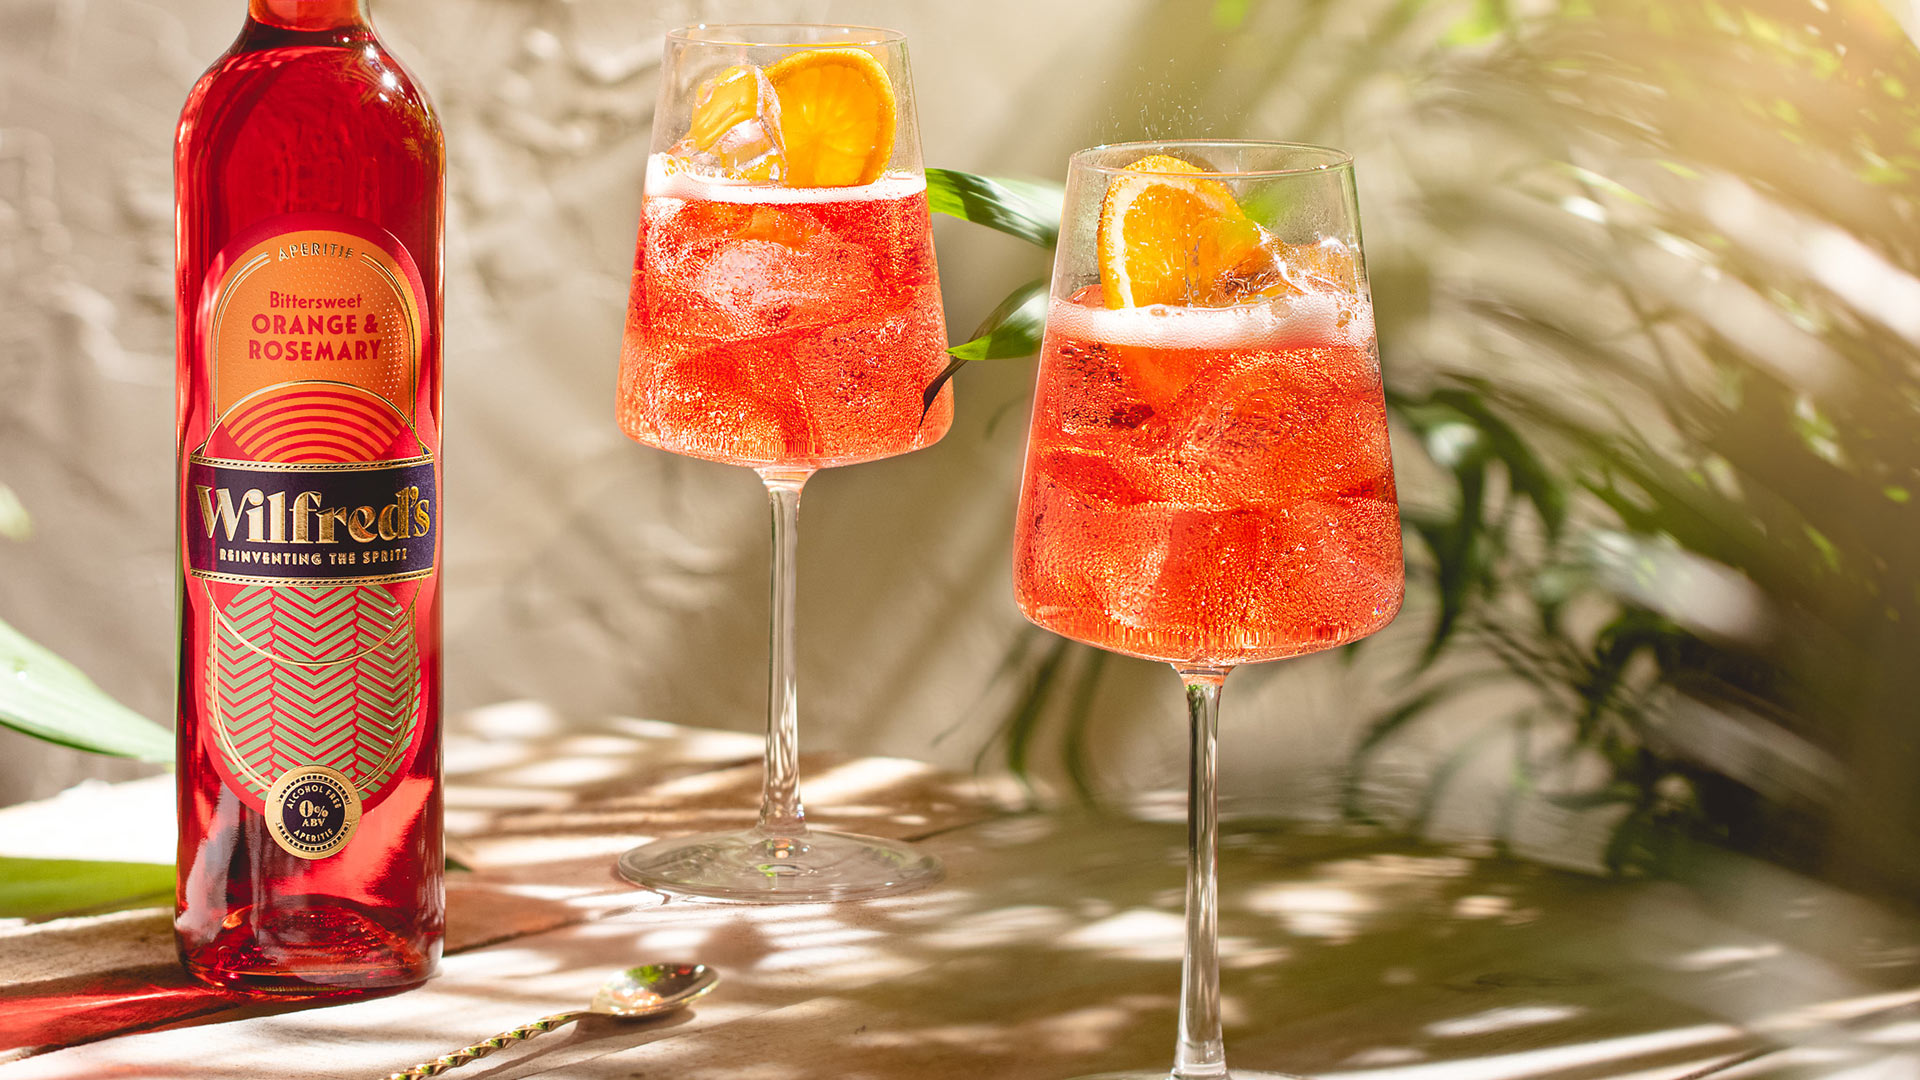 Reinventing the Spritz: Non-Alcoholic Aperitif Branding Created by Kingdom & Sparrow